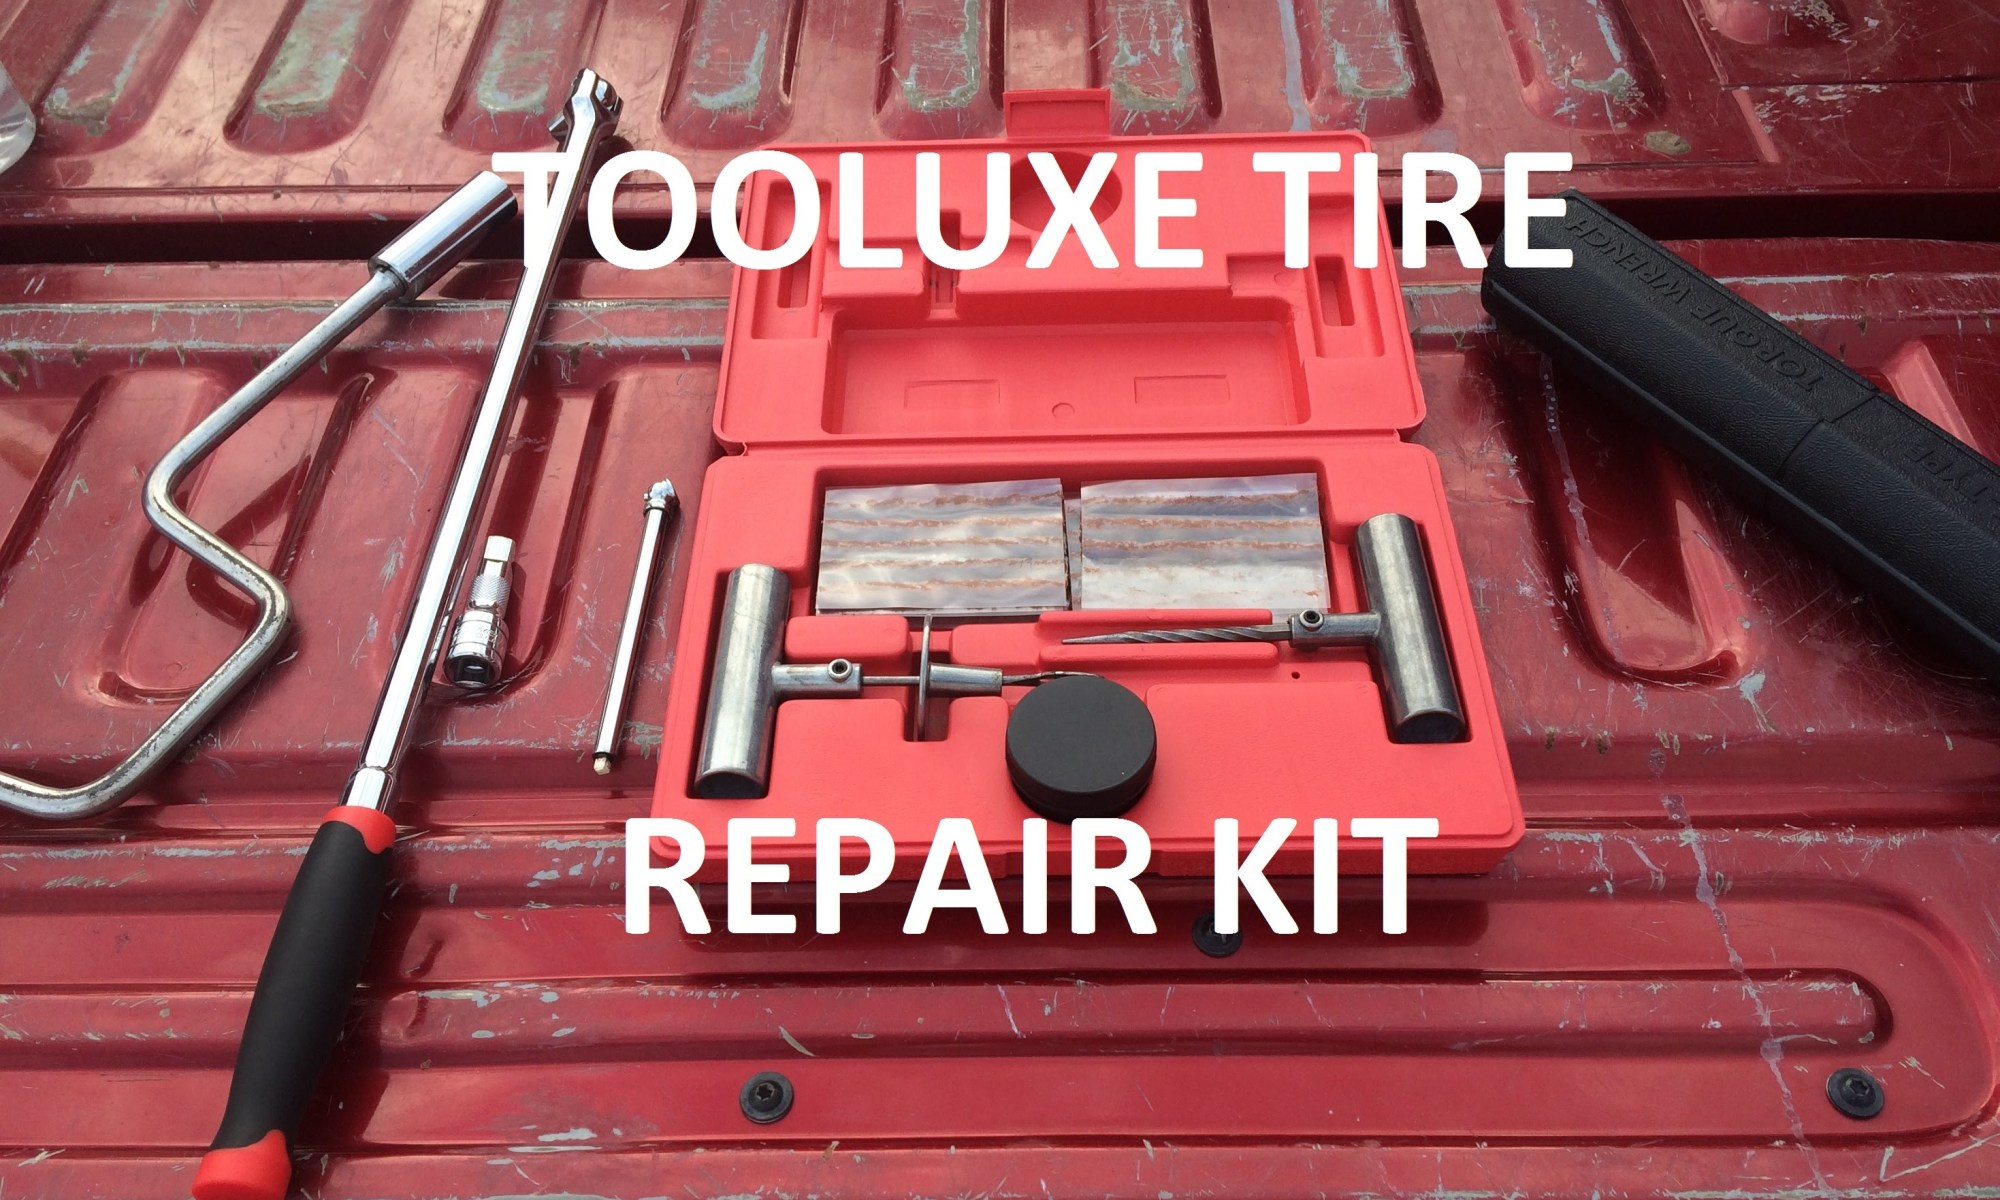 Tooluxe Tire Repair Kit